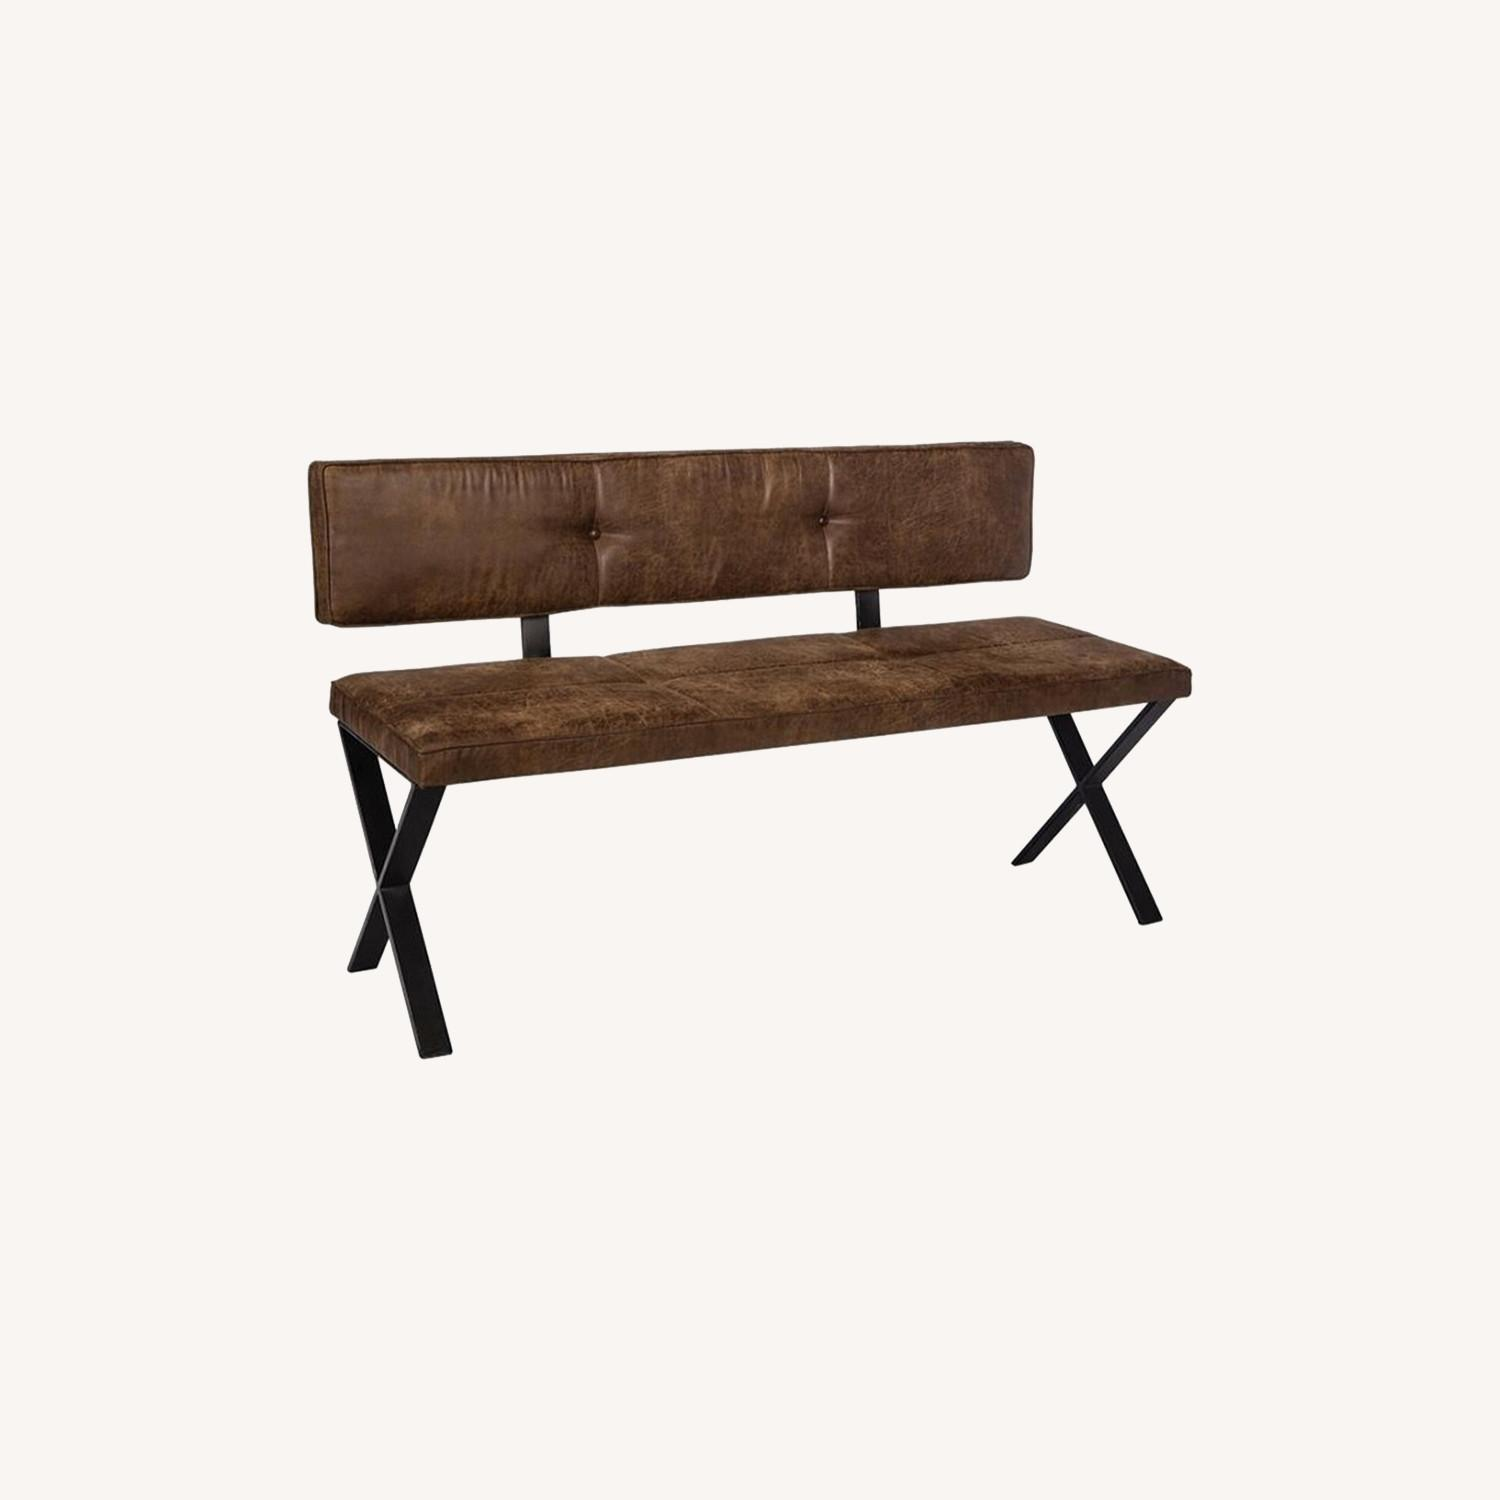 Casual-Looking Dining Bench in Antique Brown - image-3